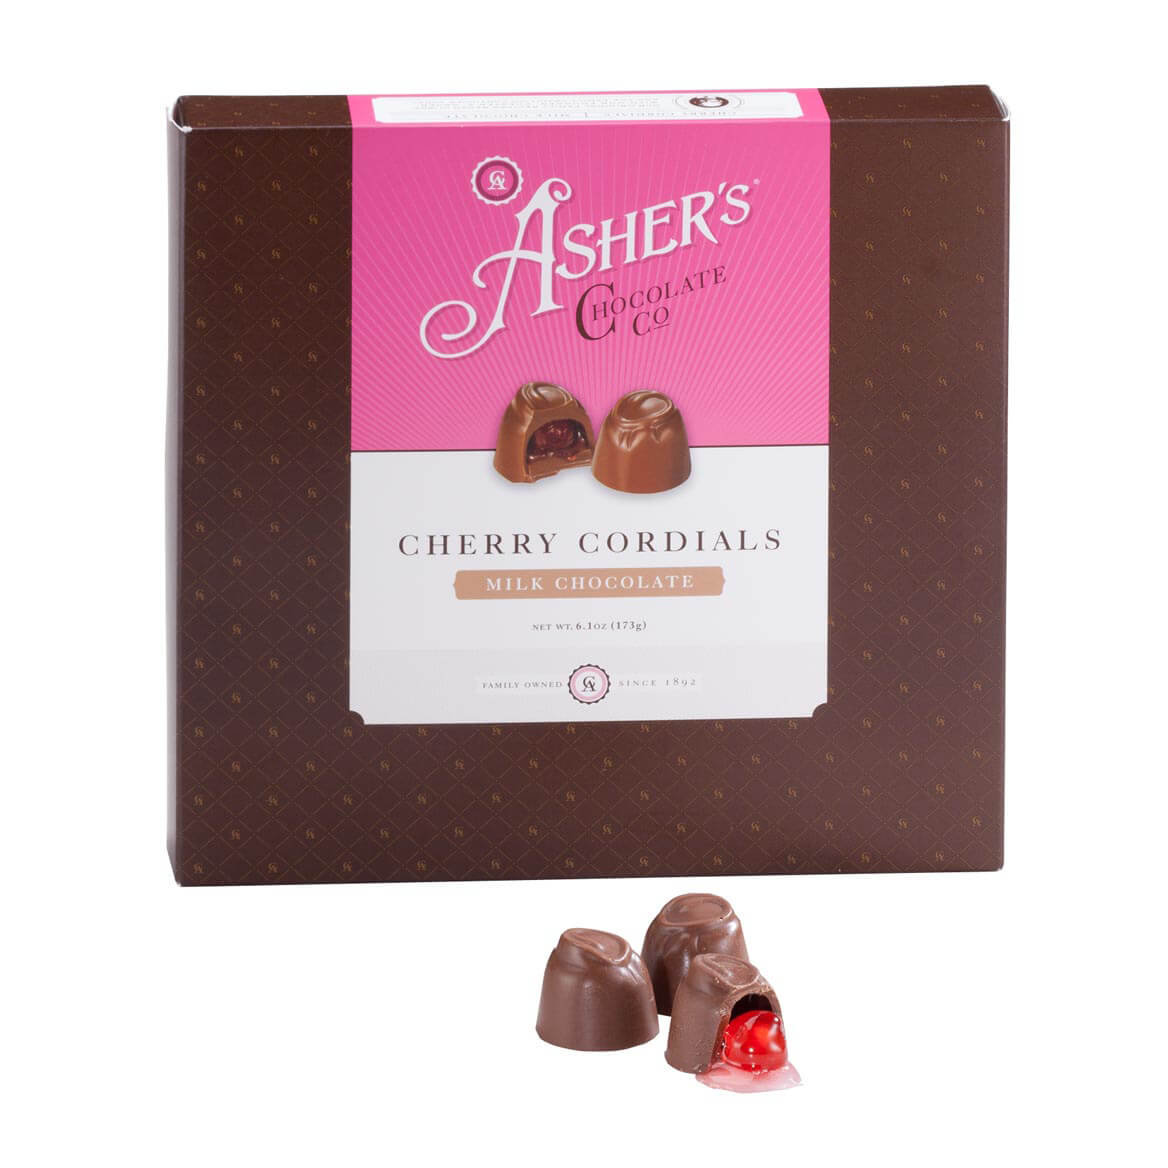 Milk Chocolate Cherry Cordial Box 6.1 oz.